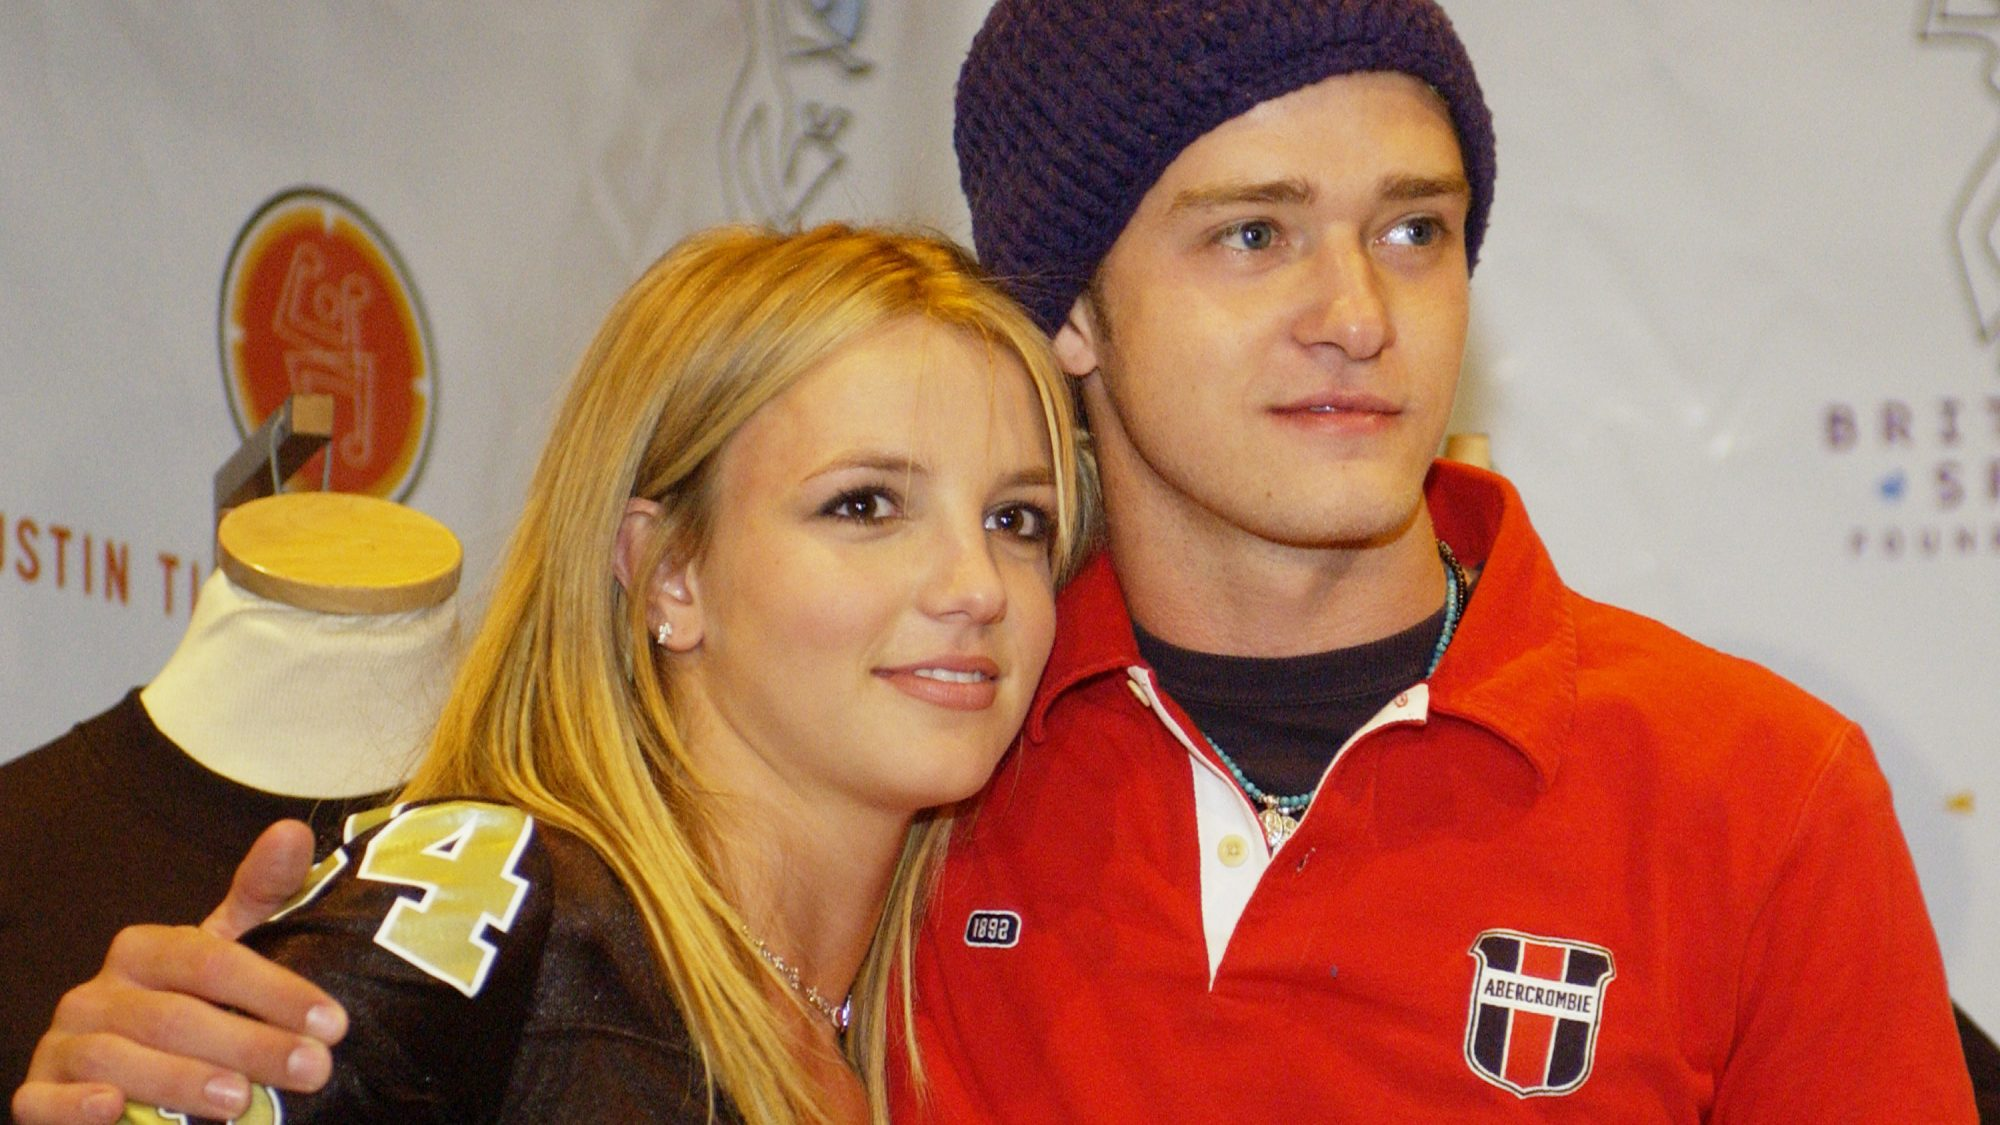 Justin Timberlake and Britney Spars